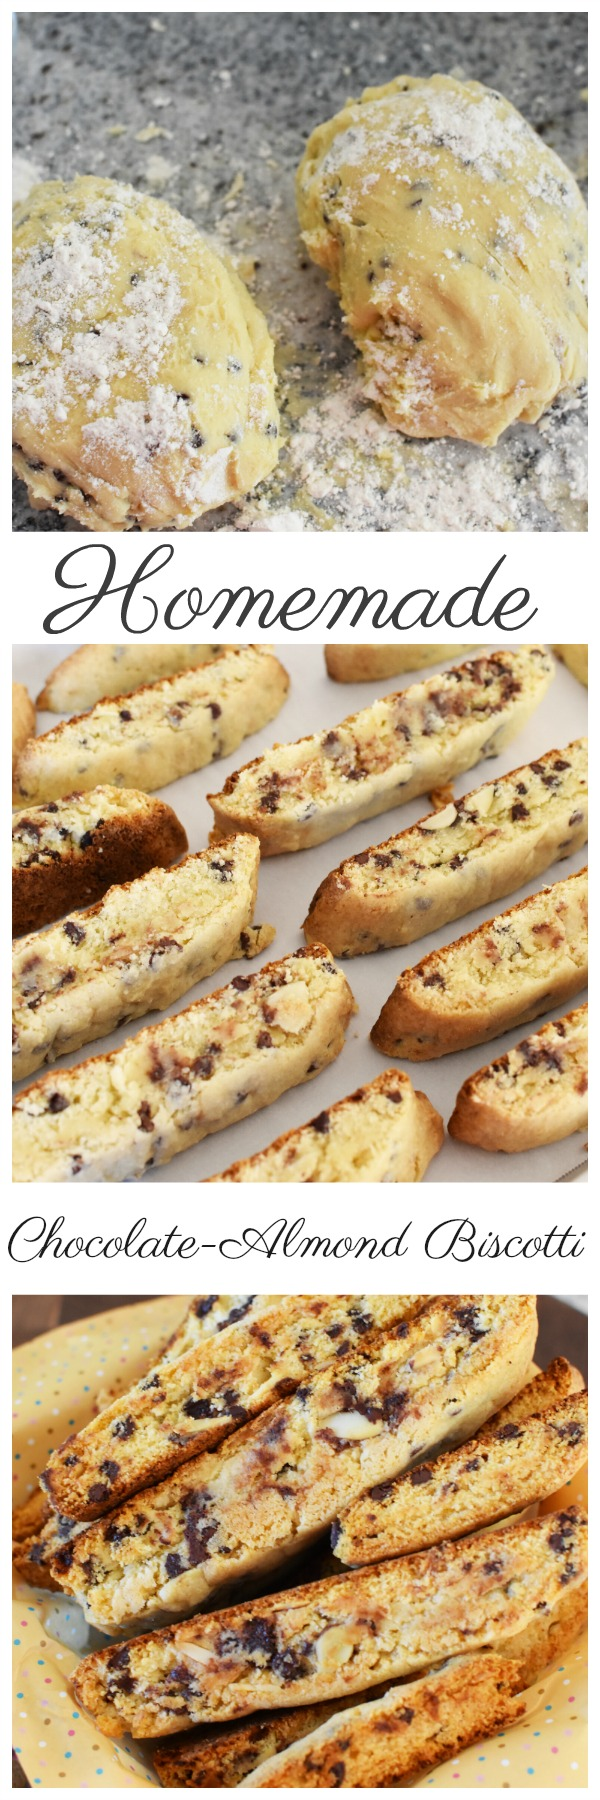 Homemade Chocolate Chip Almond Biscotti Recipe. A delicious, homemade biscotti recipe that has all the mouthwatering flavors of almond and chocolate which pair so perfectly together.